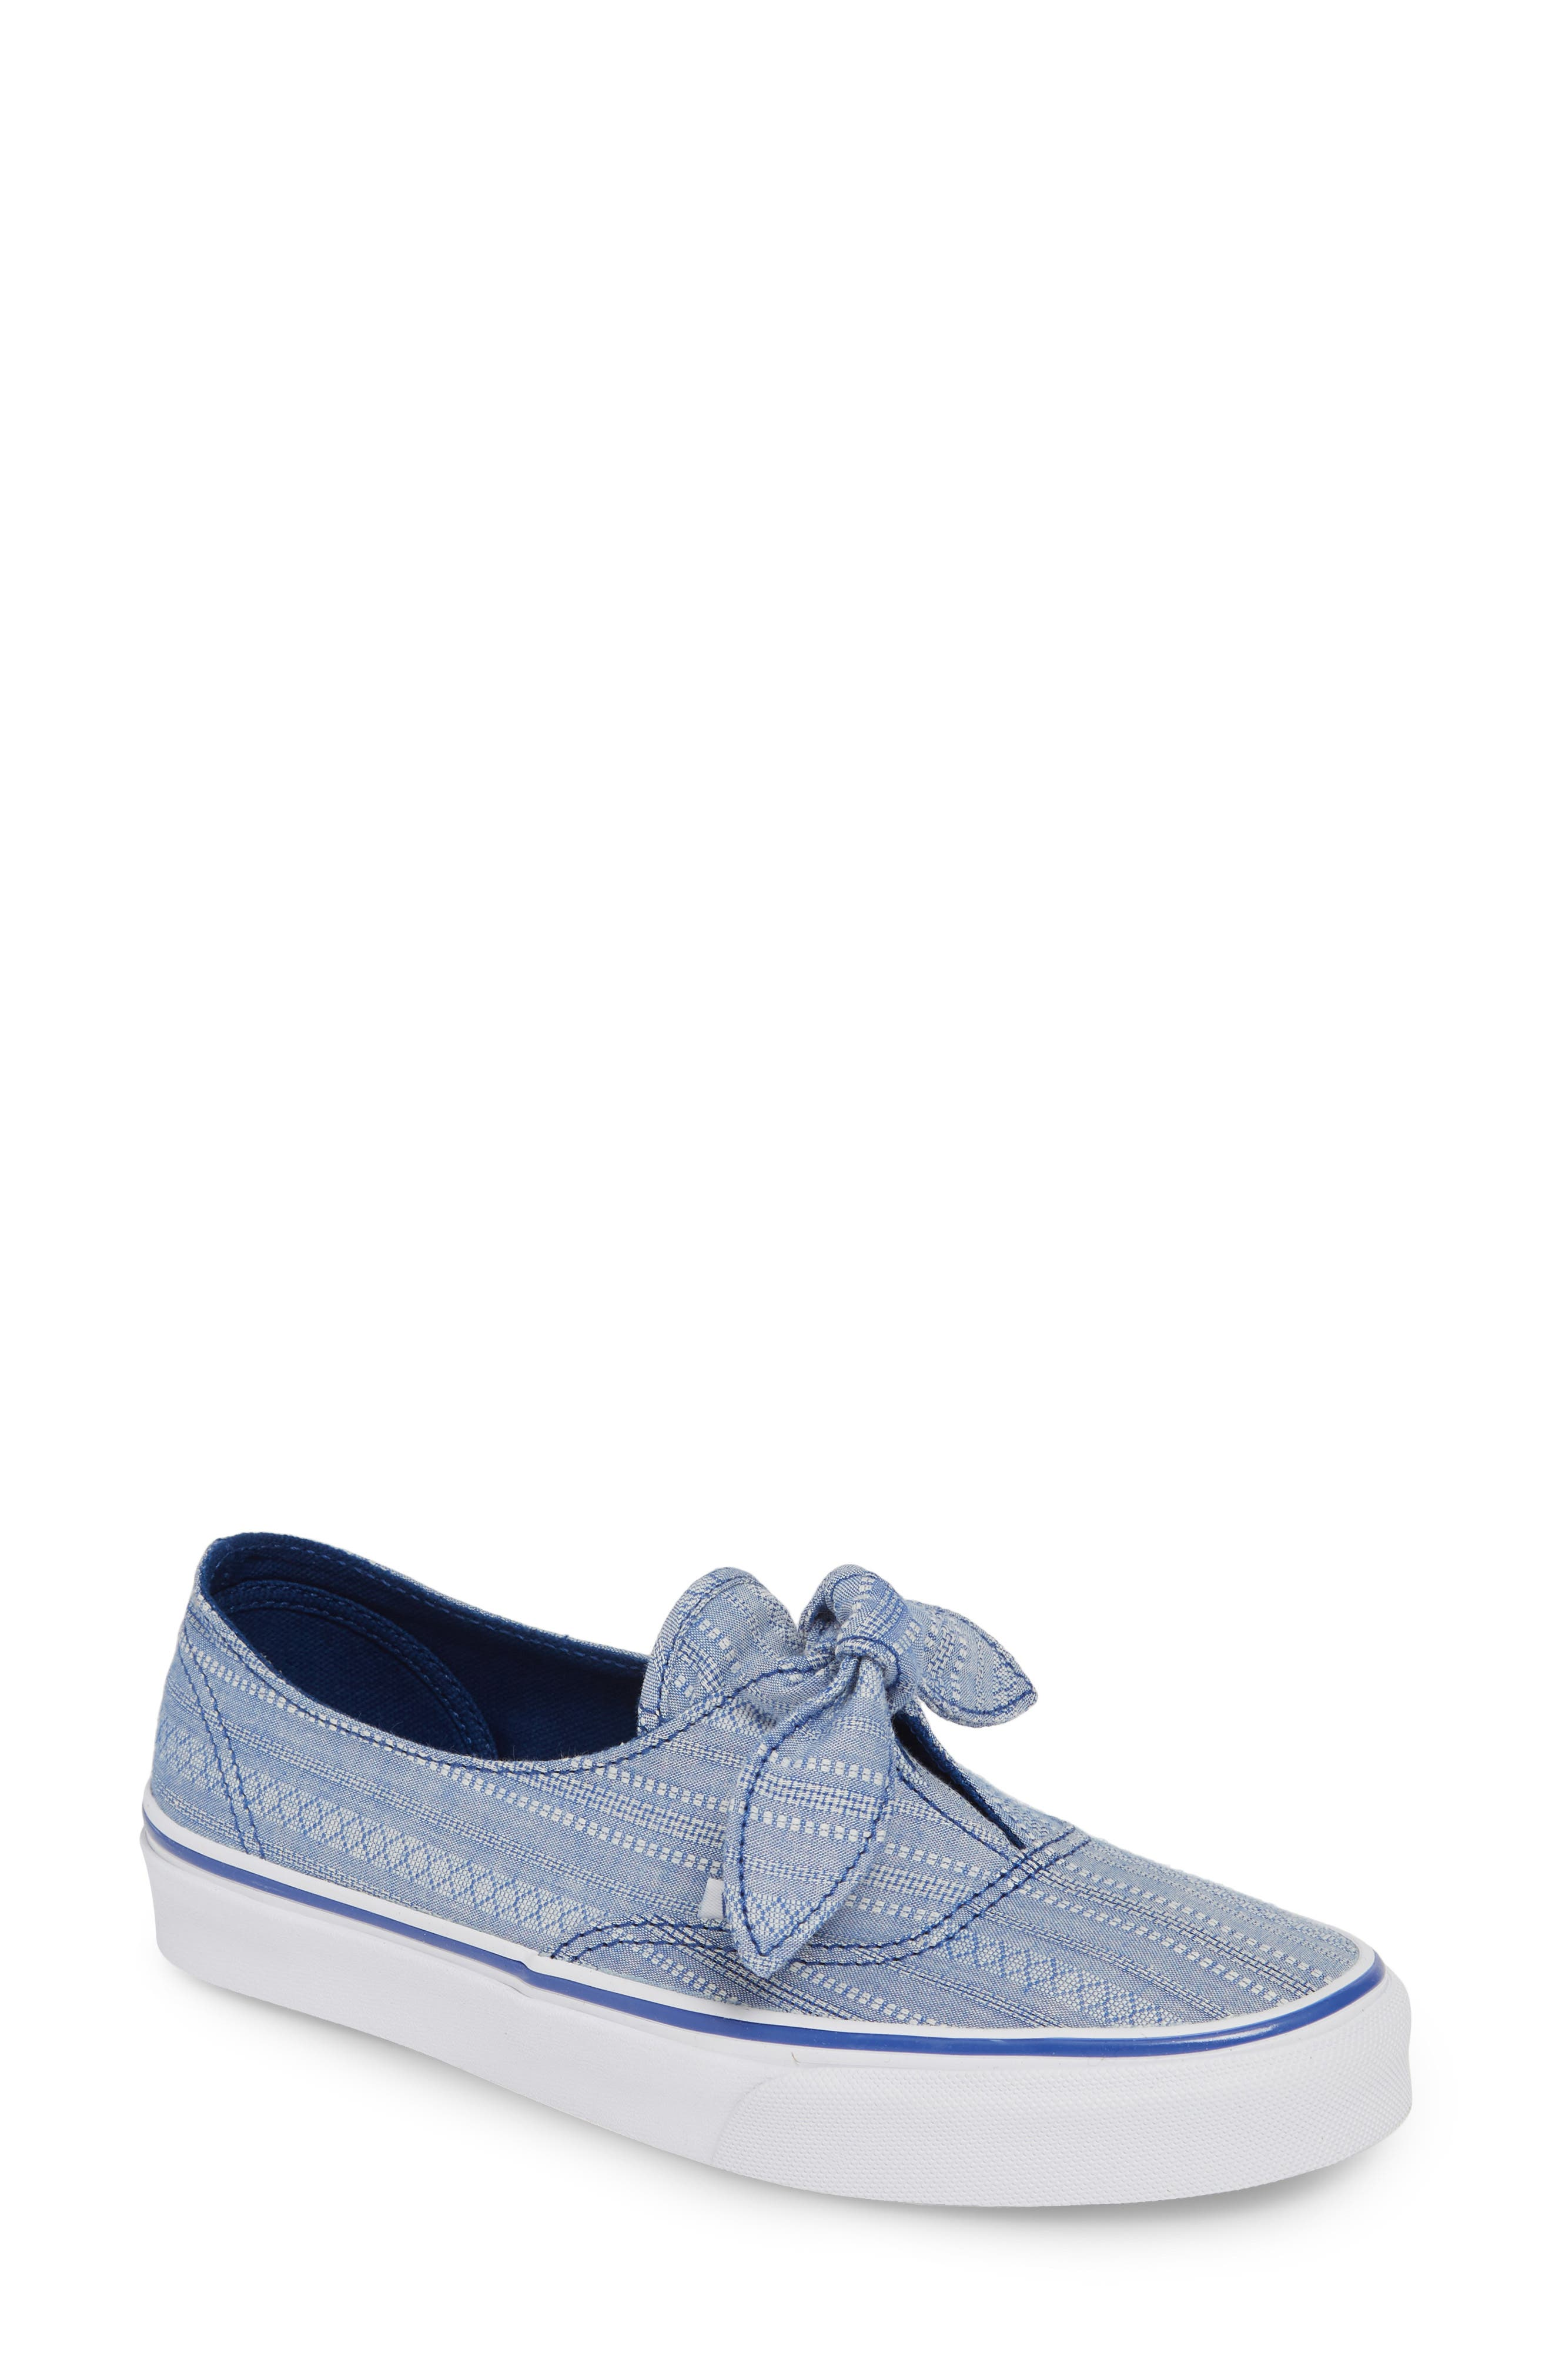 Vans Ua Authentic Knotted Lace Chambray Sneaker, Blue